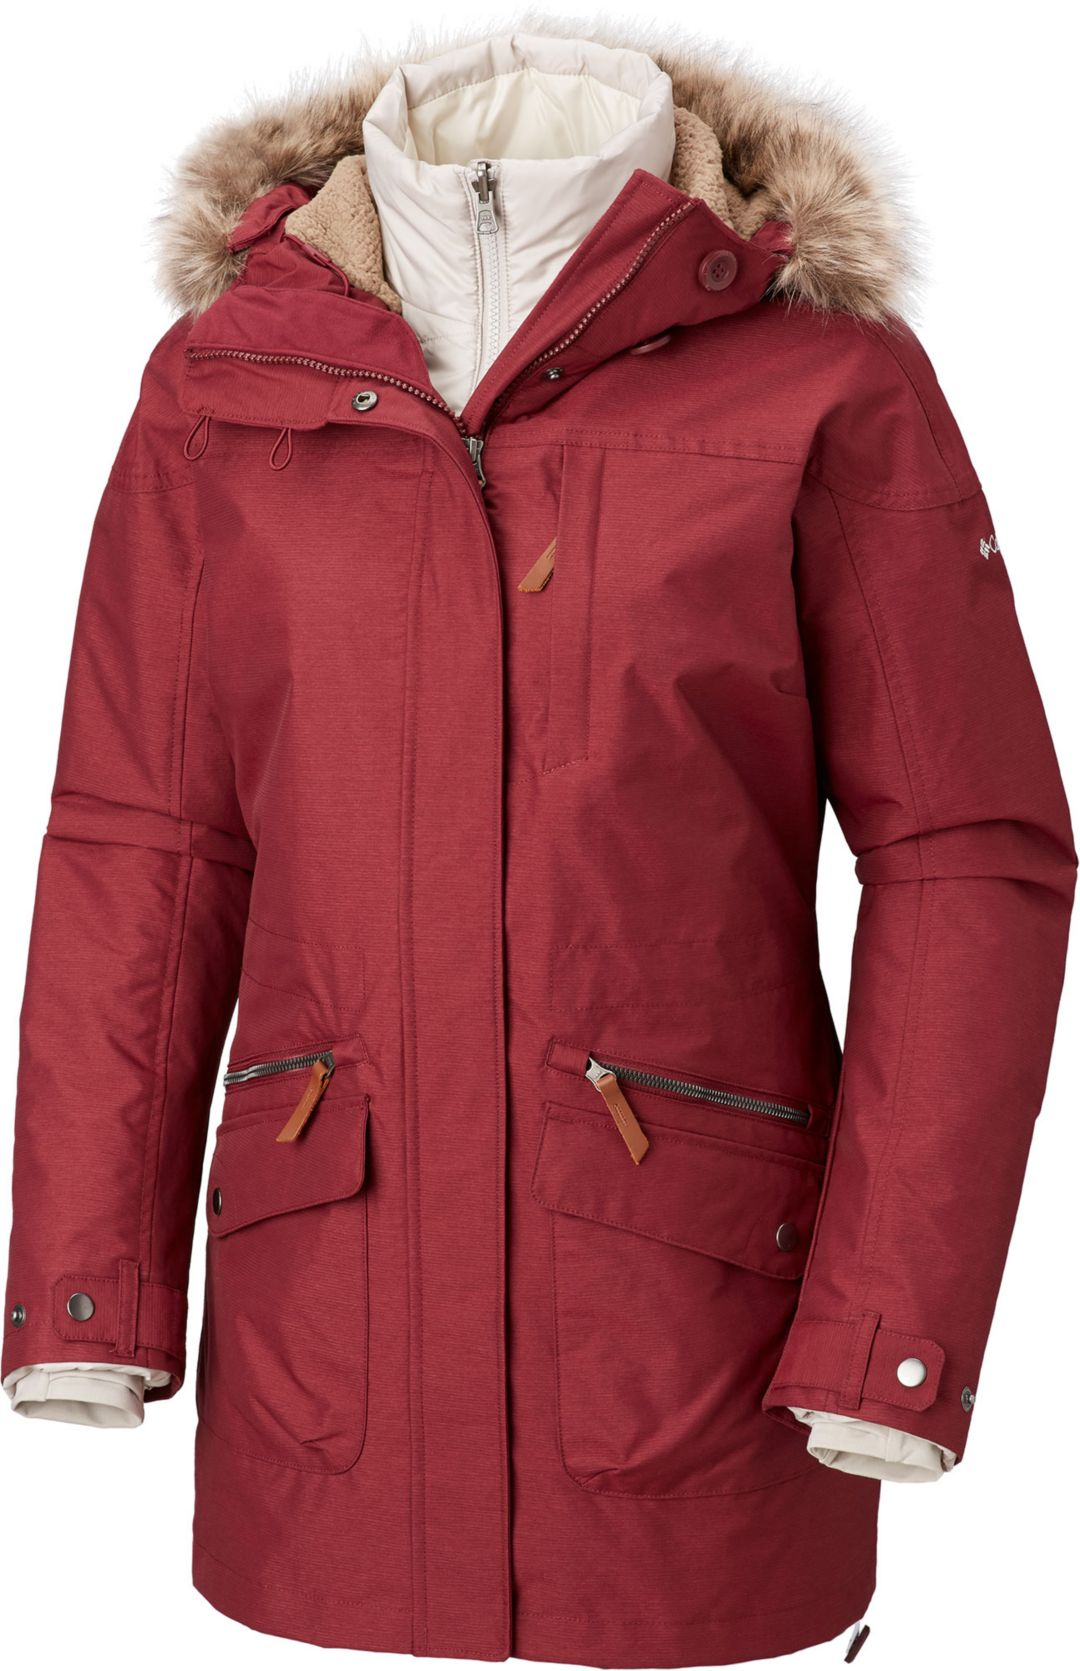 b0c7bf73ab37d Columbia Women's Carson Pass IC 3-in-1 Jacket | DICK'S Sporting Goods